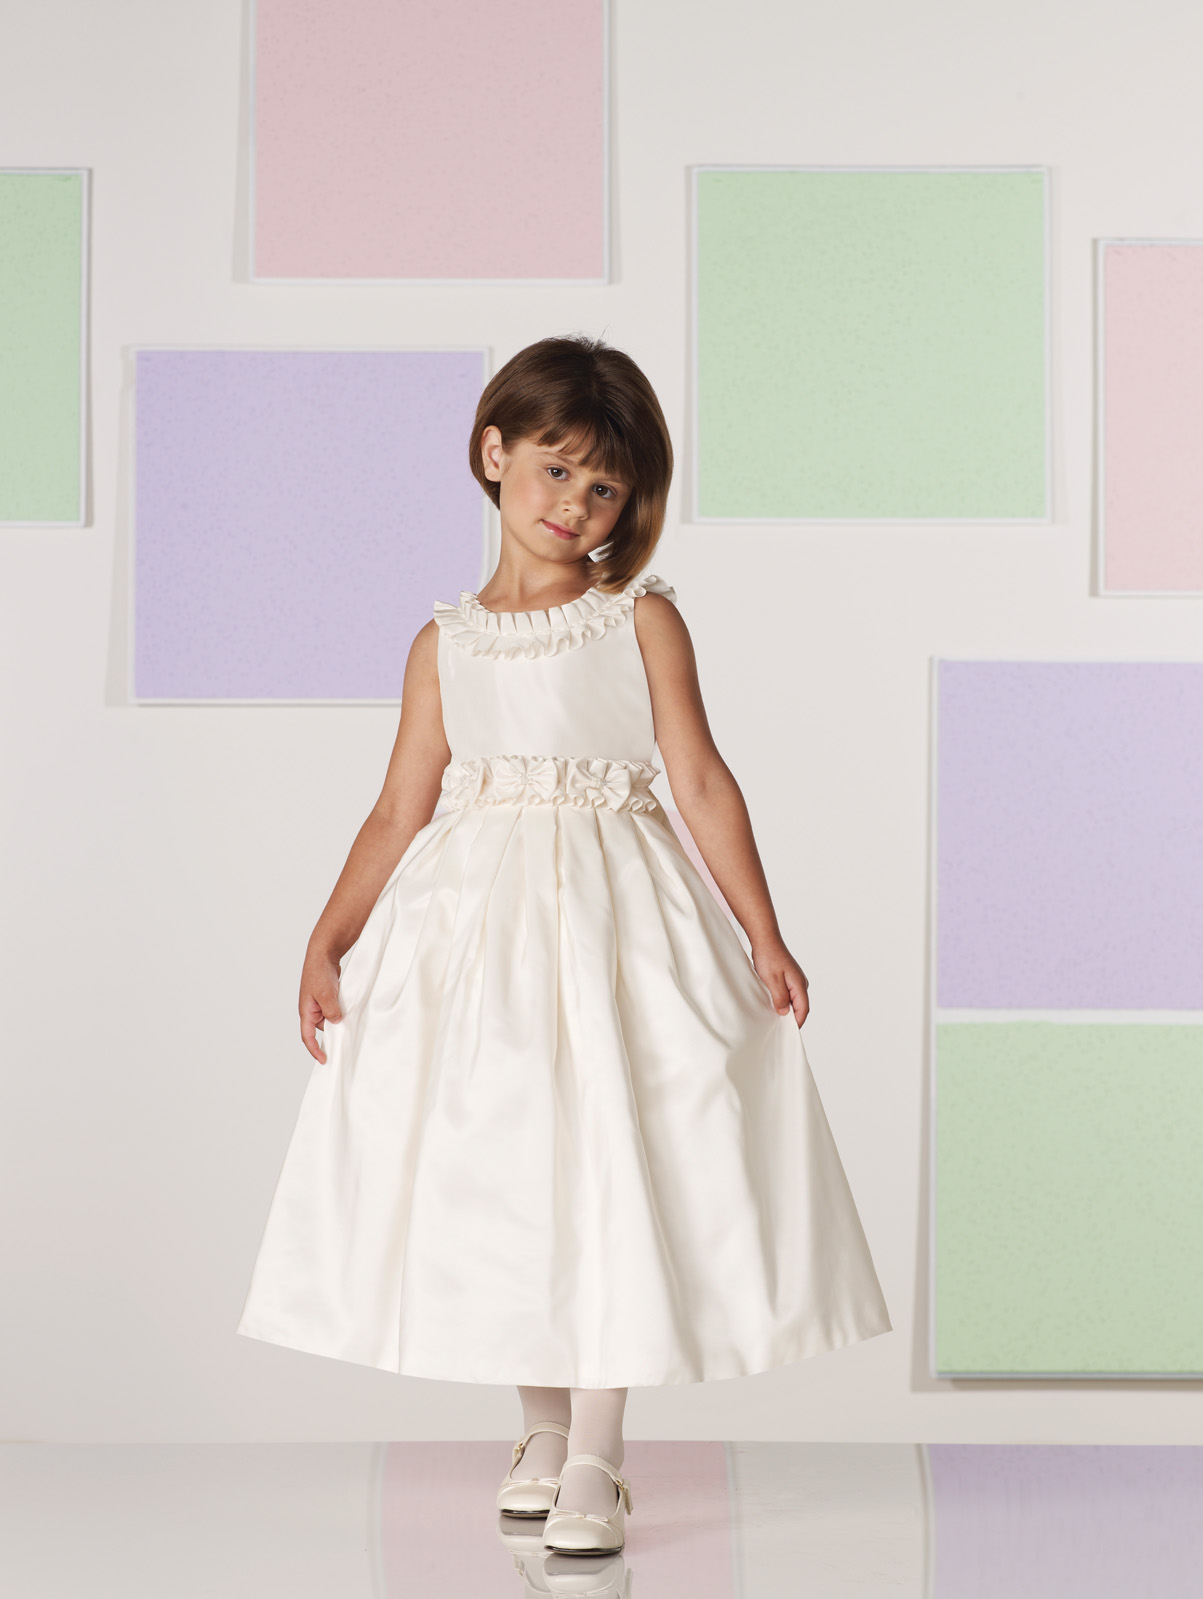 Mon cheri flower girl dresses pictures